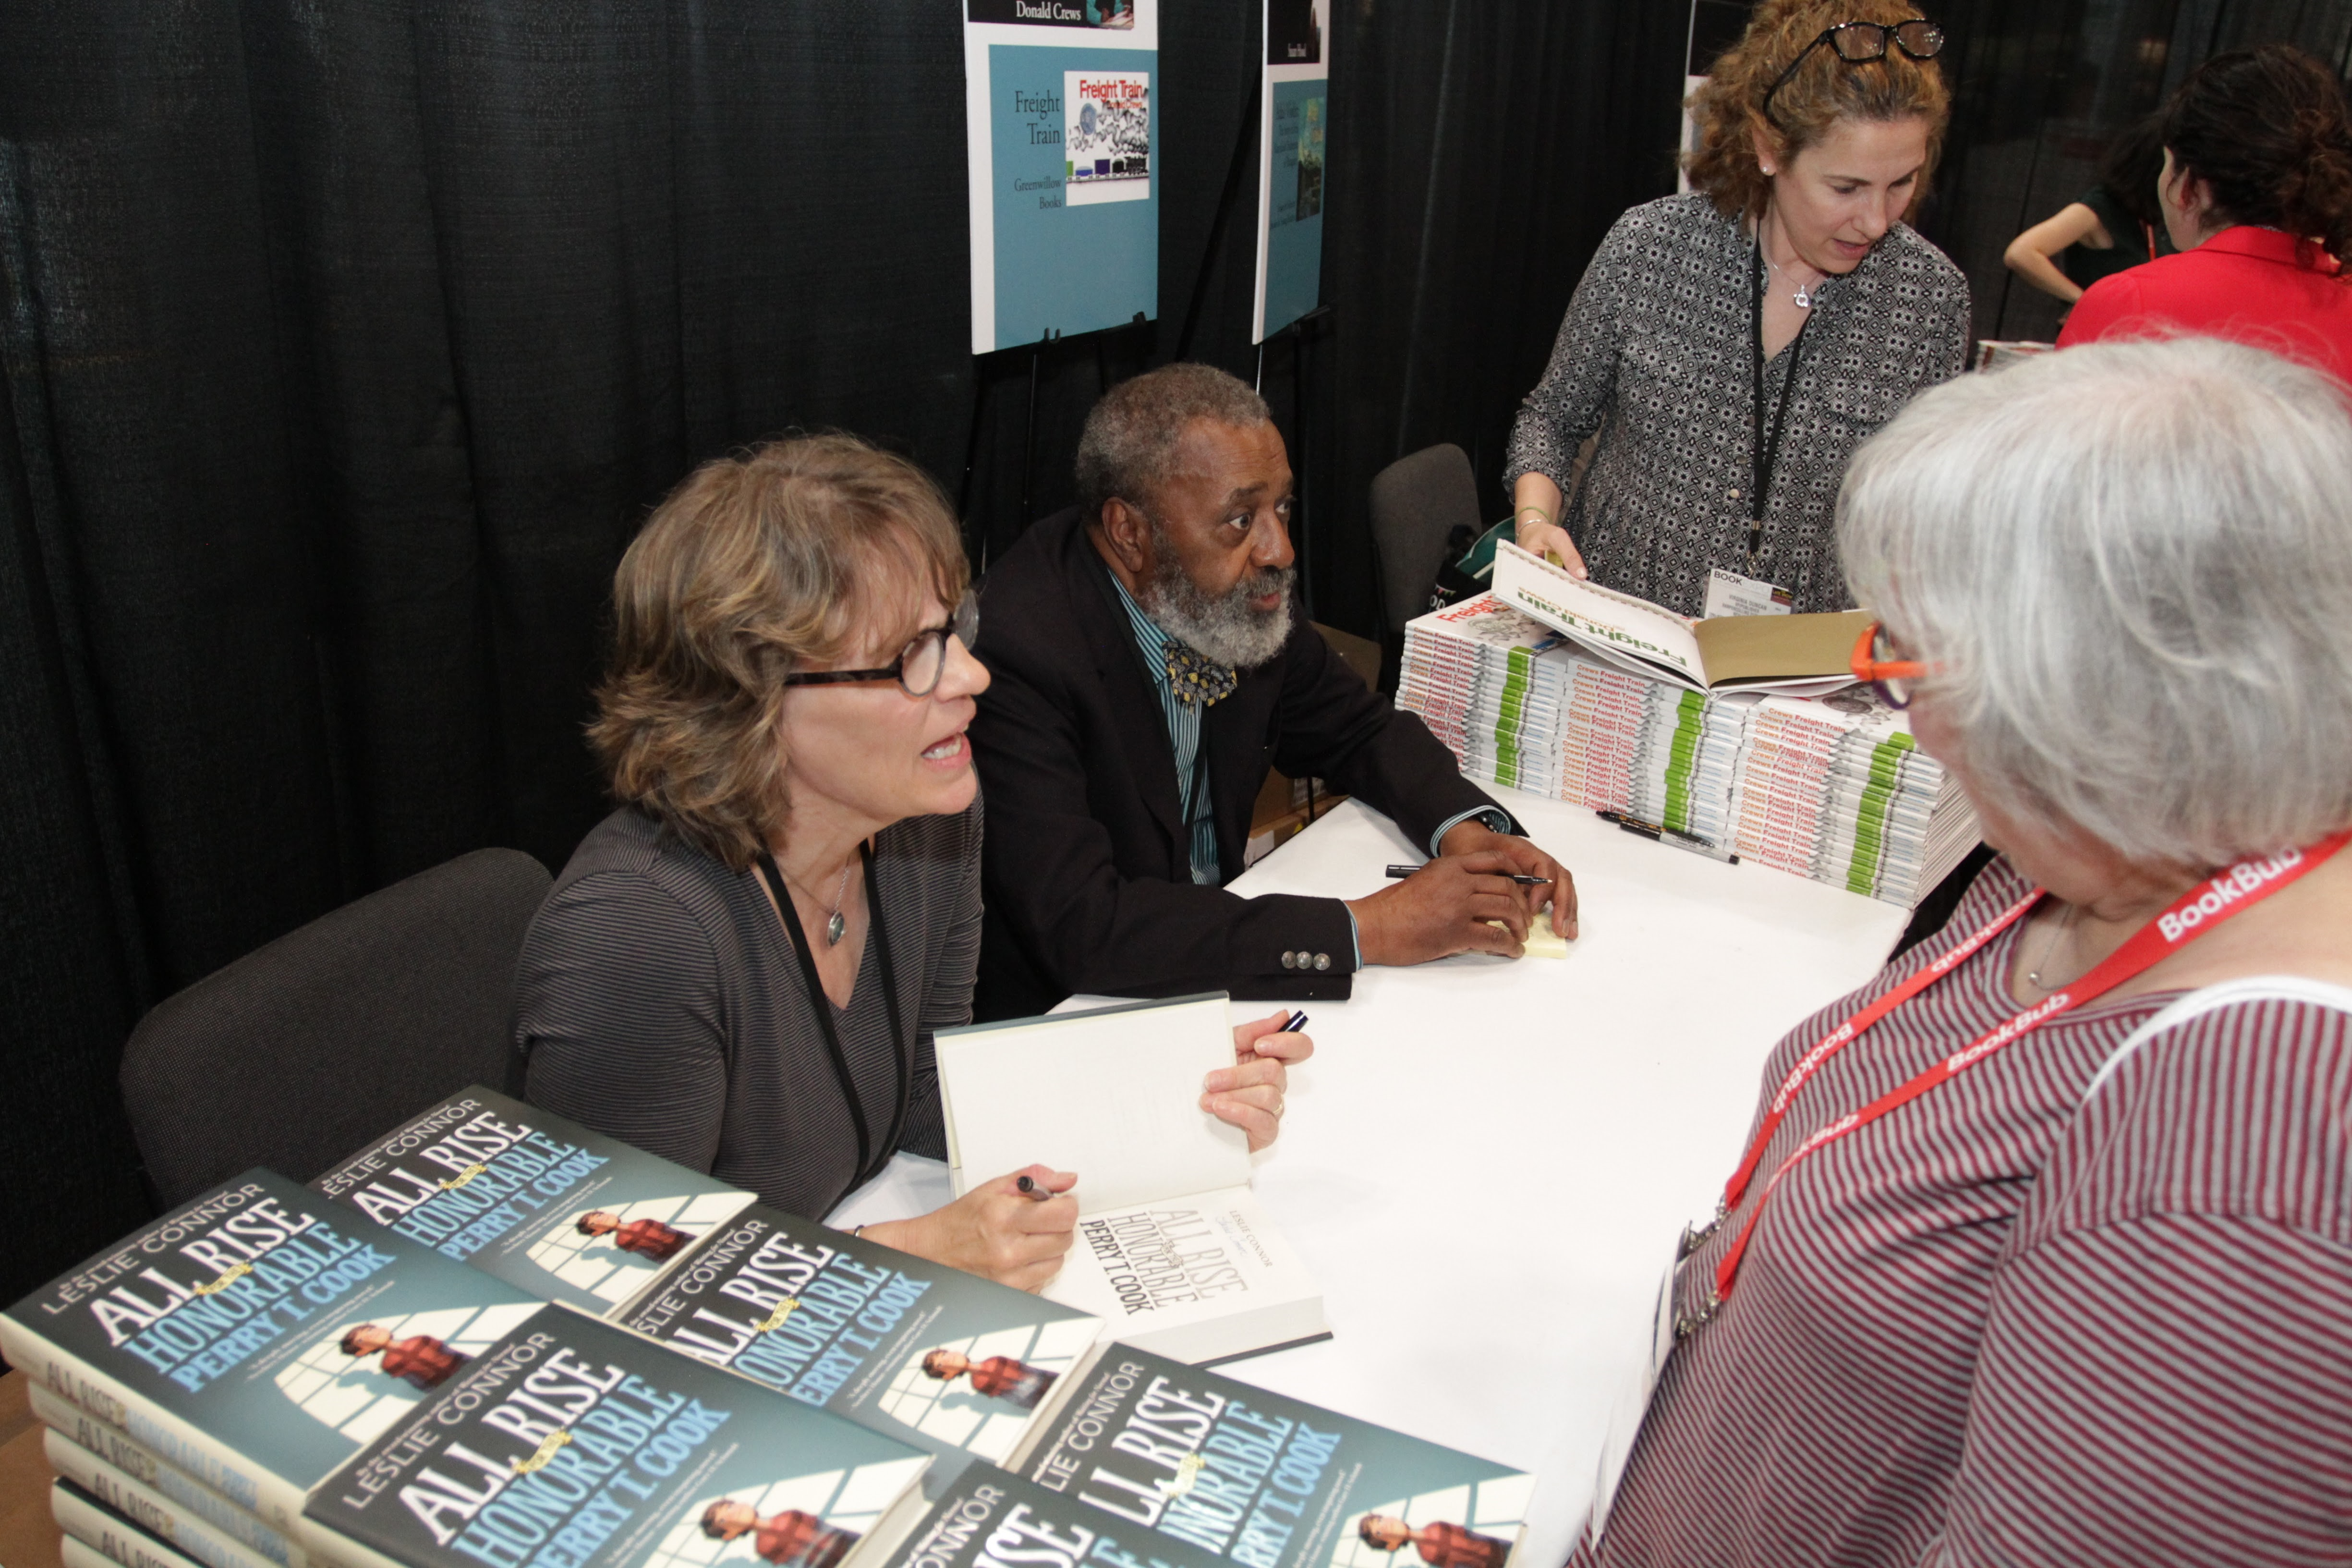 Leslie Connor and Donald Crew sign copies of their books in the ABA Lounge following the lunch.